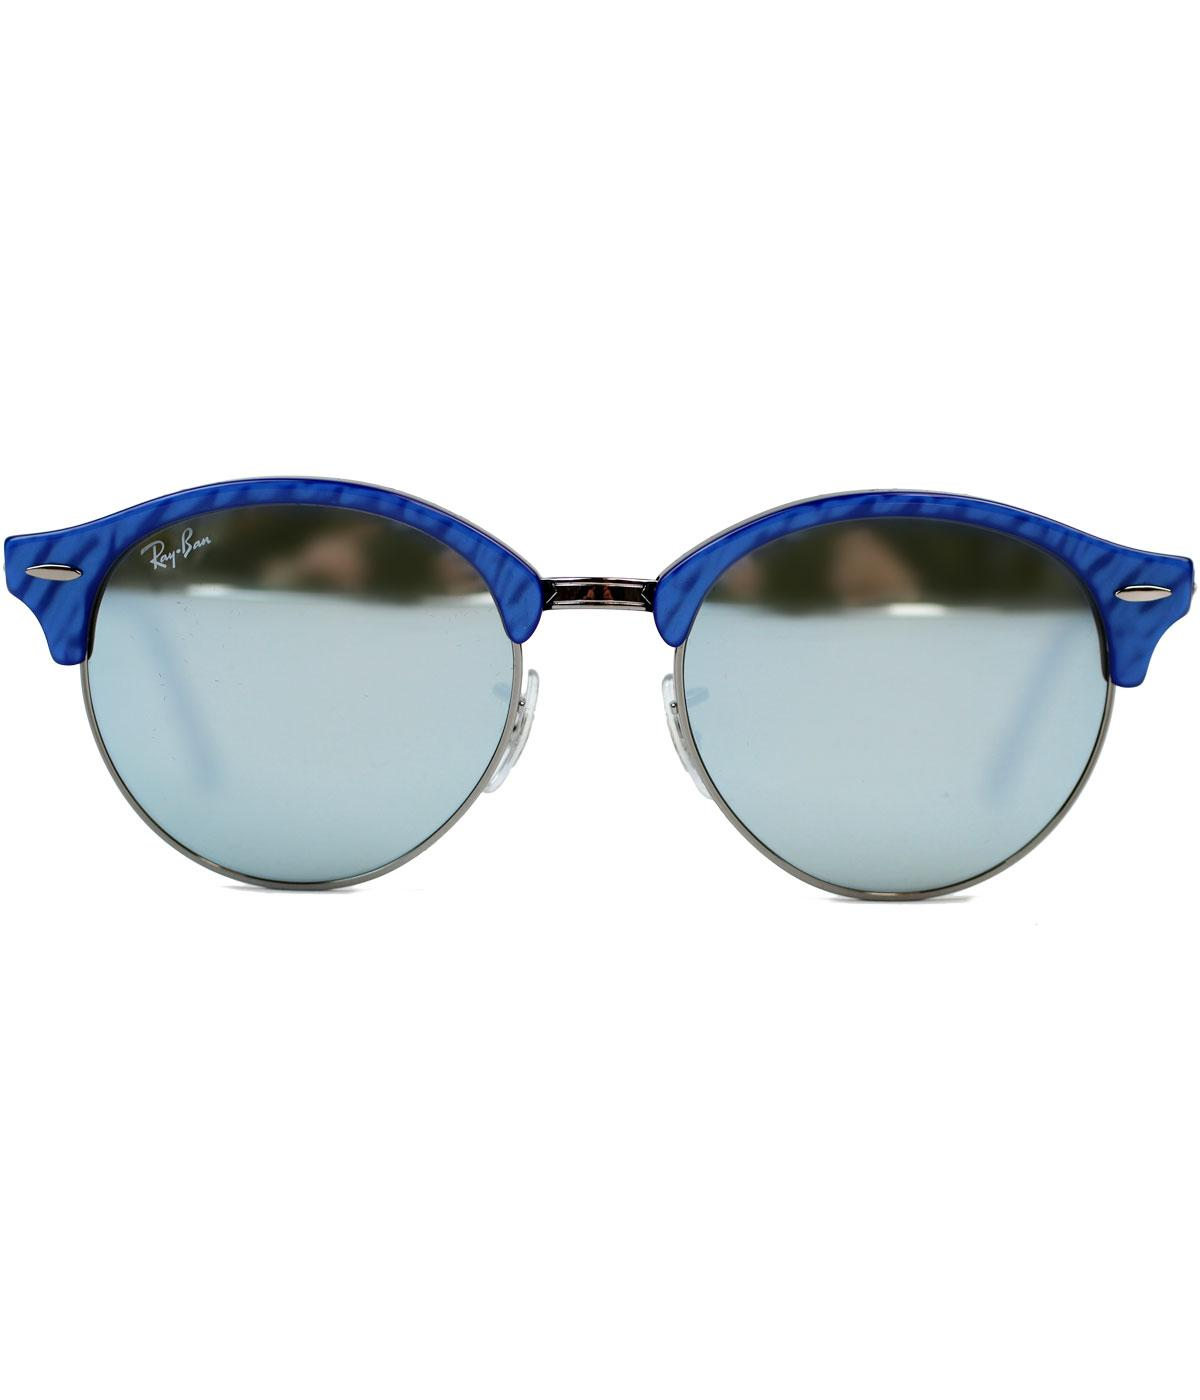 7050566df61 Ray Ban Sunglasses Round Black Blue « One More Soul